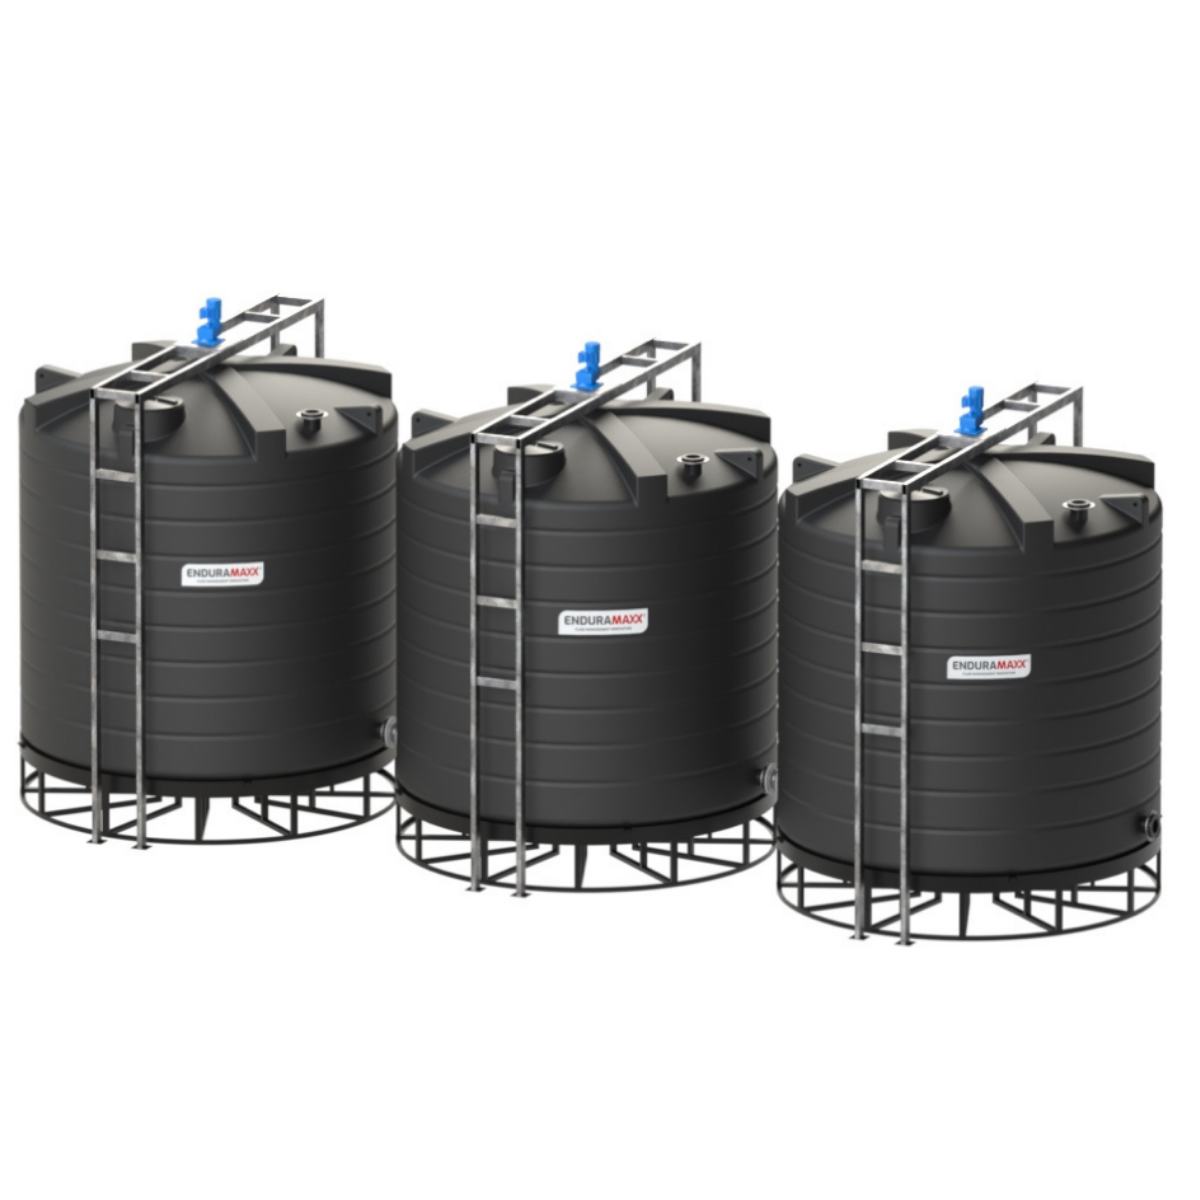 Enduramaxx Sludge Buffer Tanks